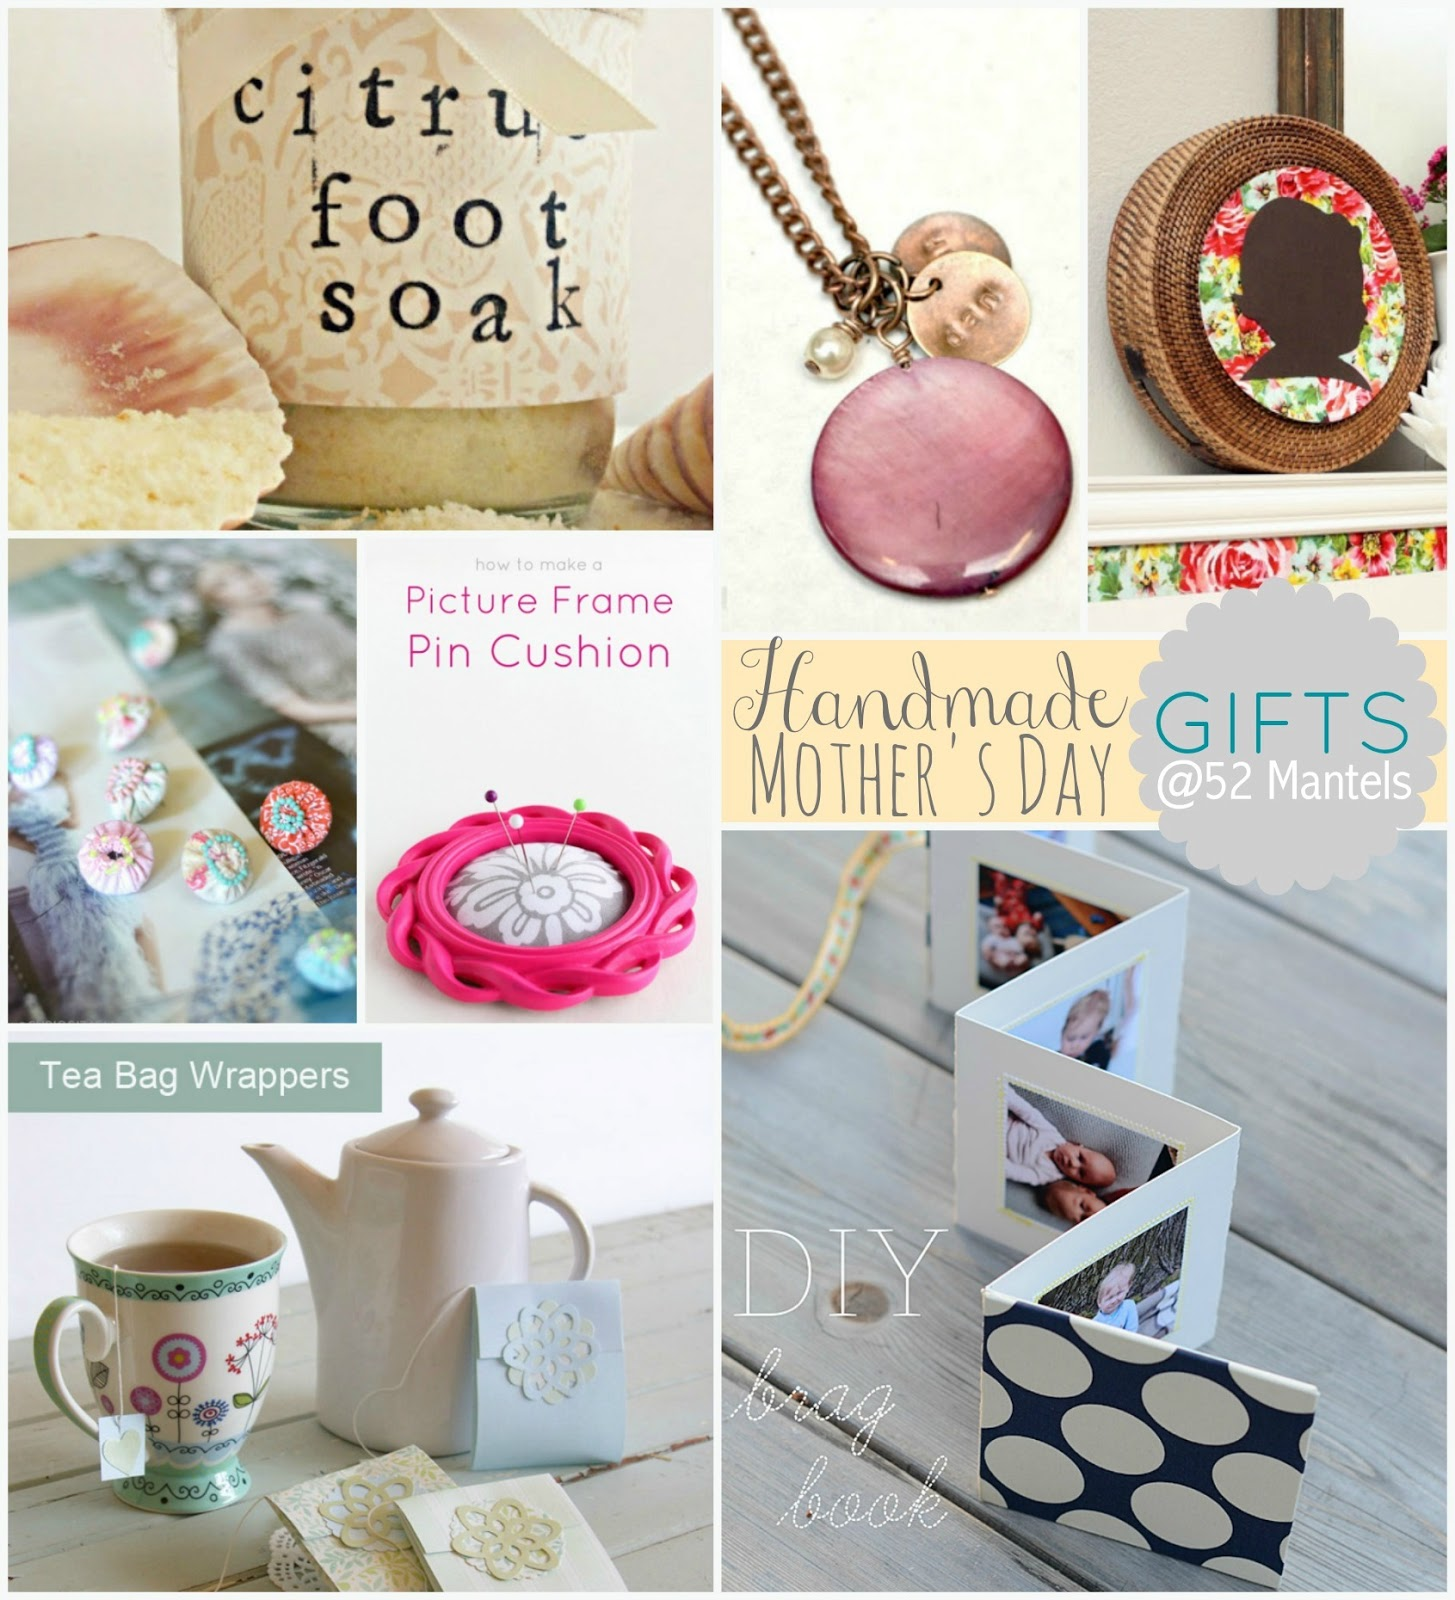 52 mantels handmade mothers day gift ideas handmade mothers day gift ideas solutioingenieria Images